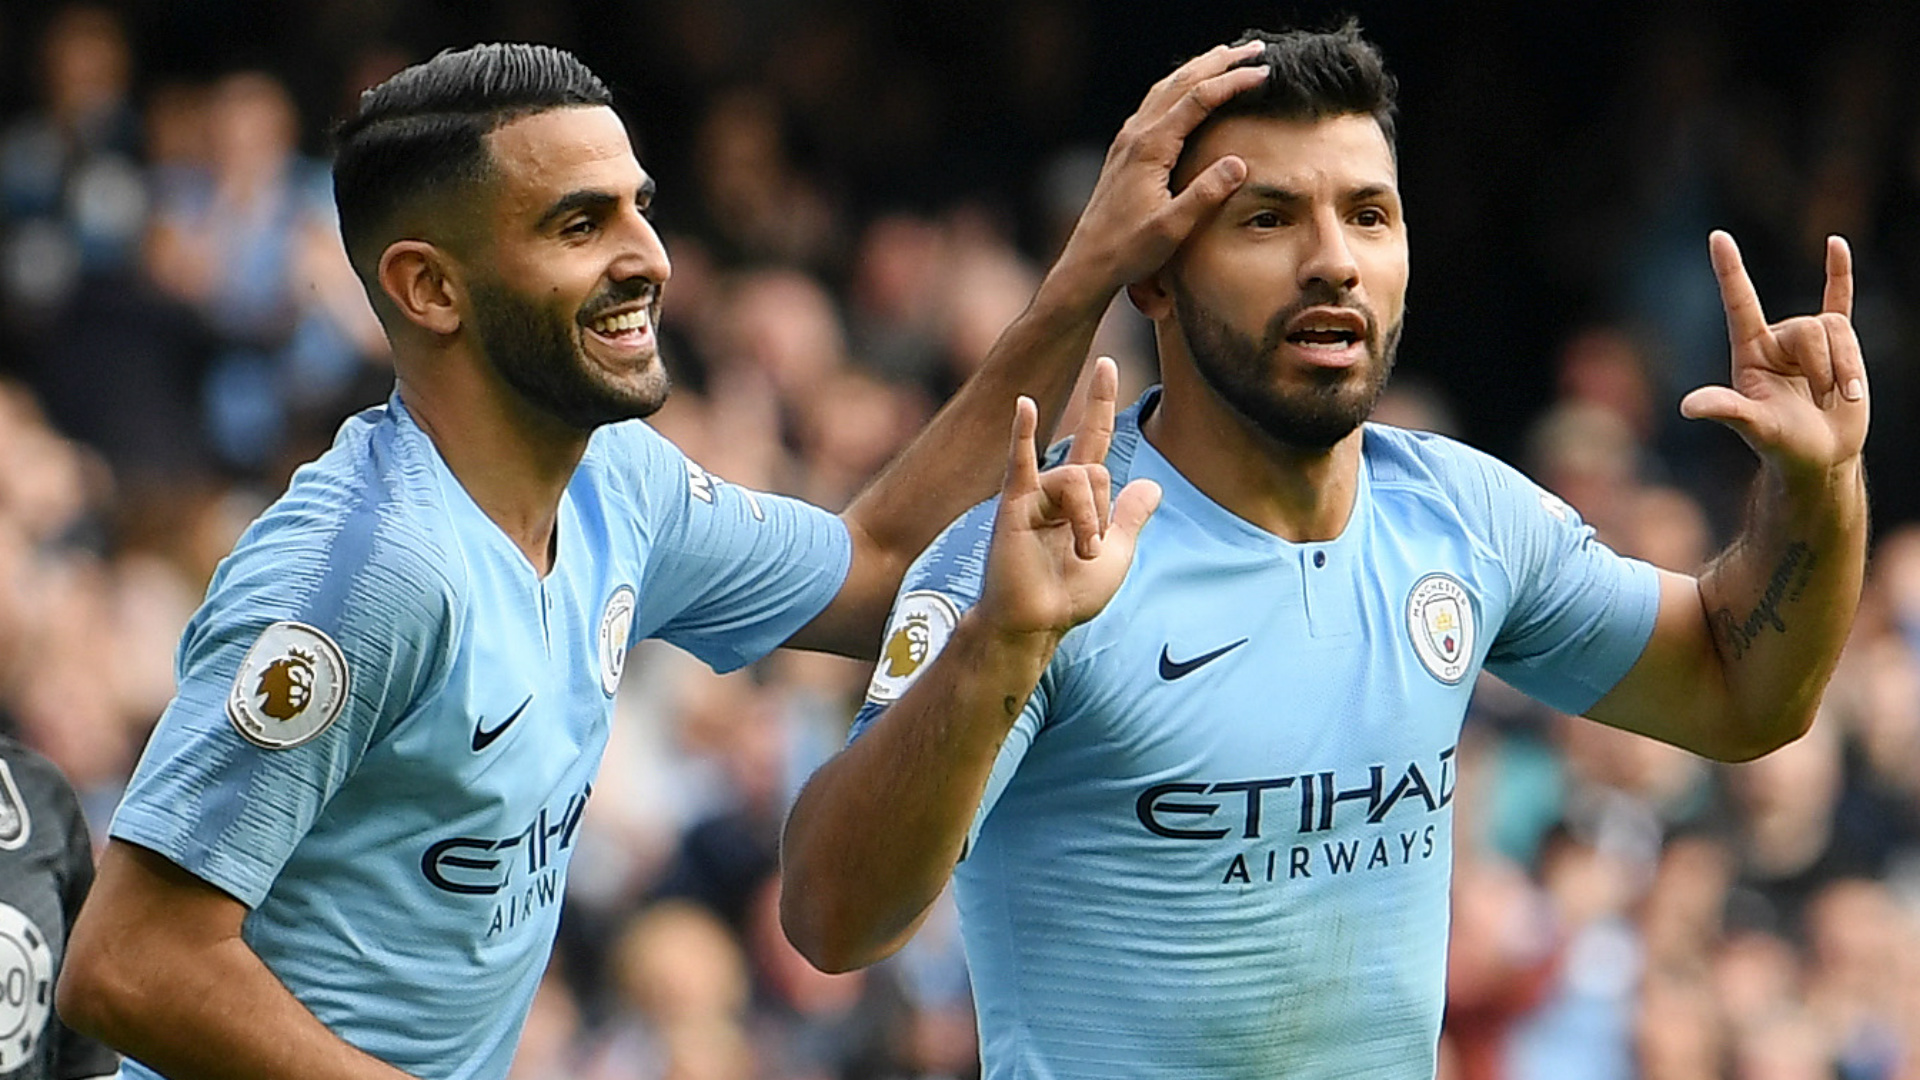 Manchester City's Riyad Mahrez Pleased With West Ham